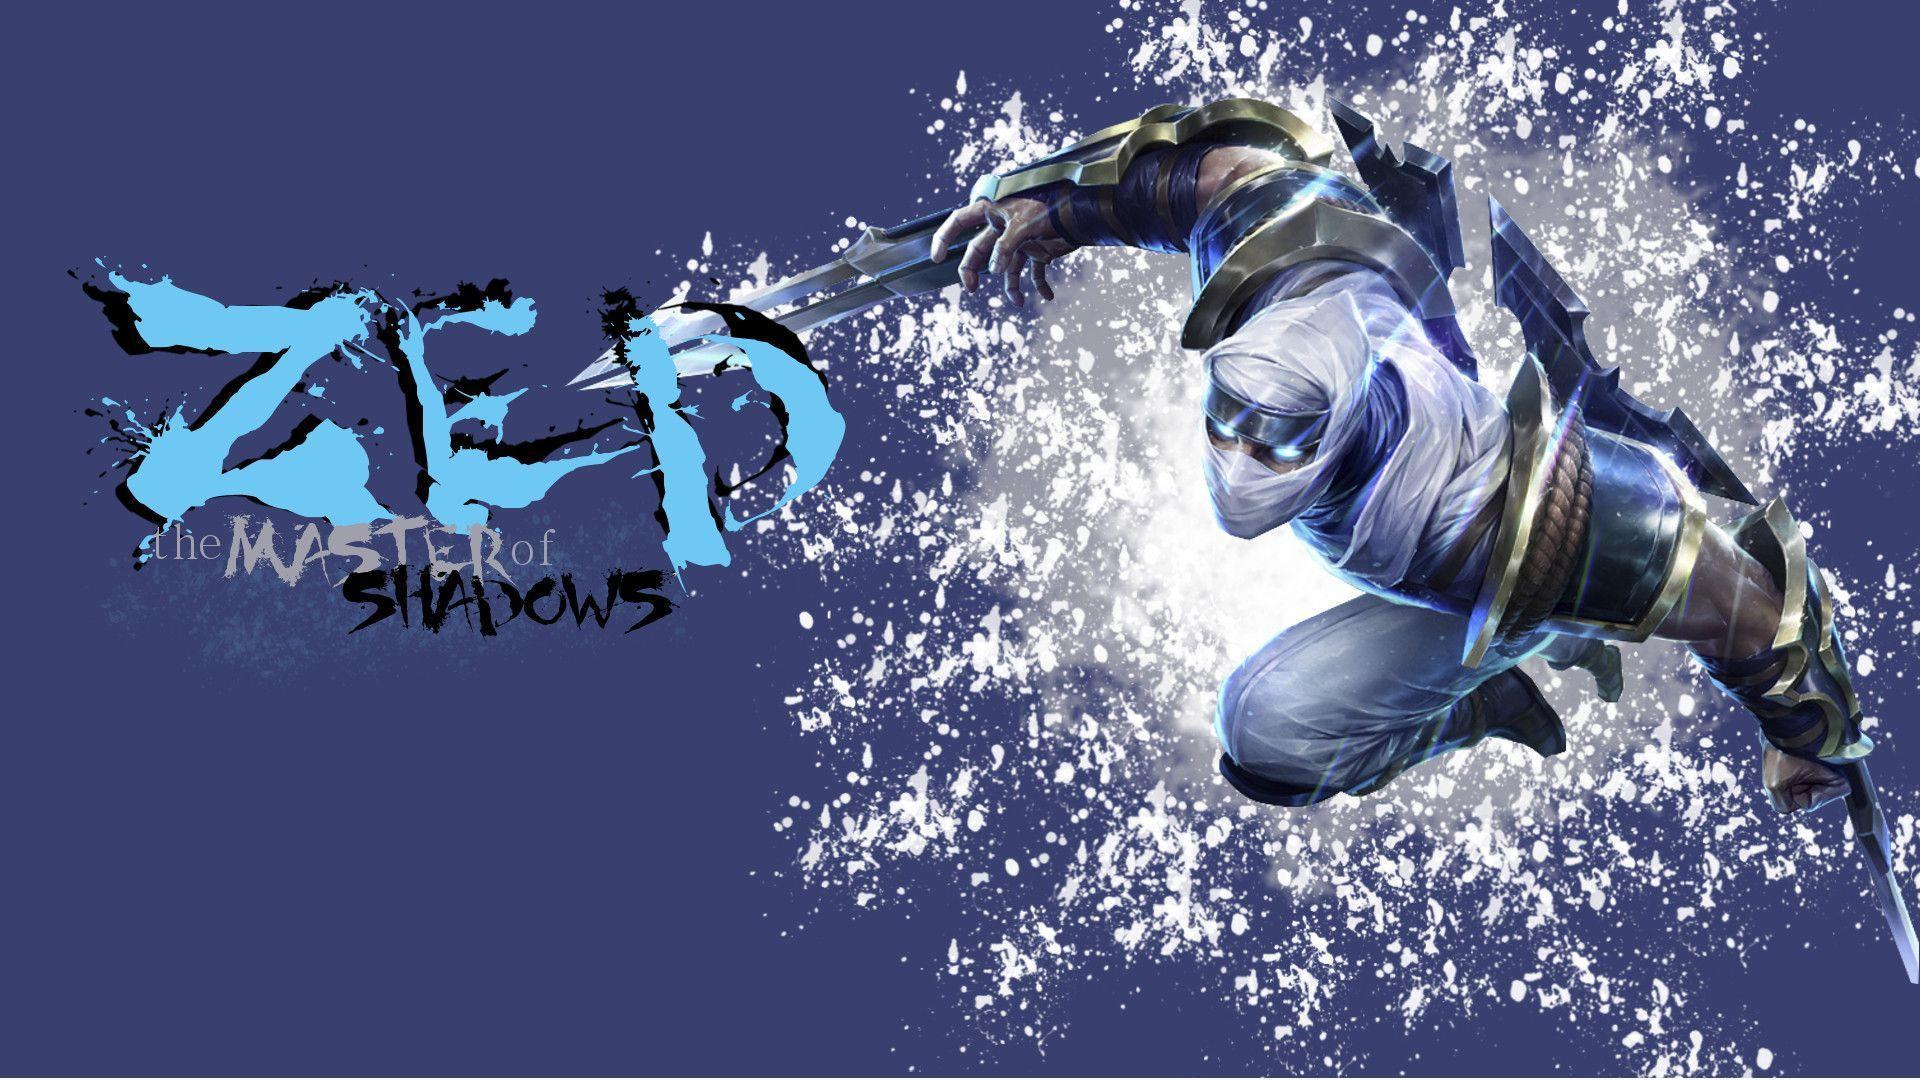 Zed Wallpapers 13 253033 Image HD Wallpapers